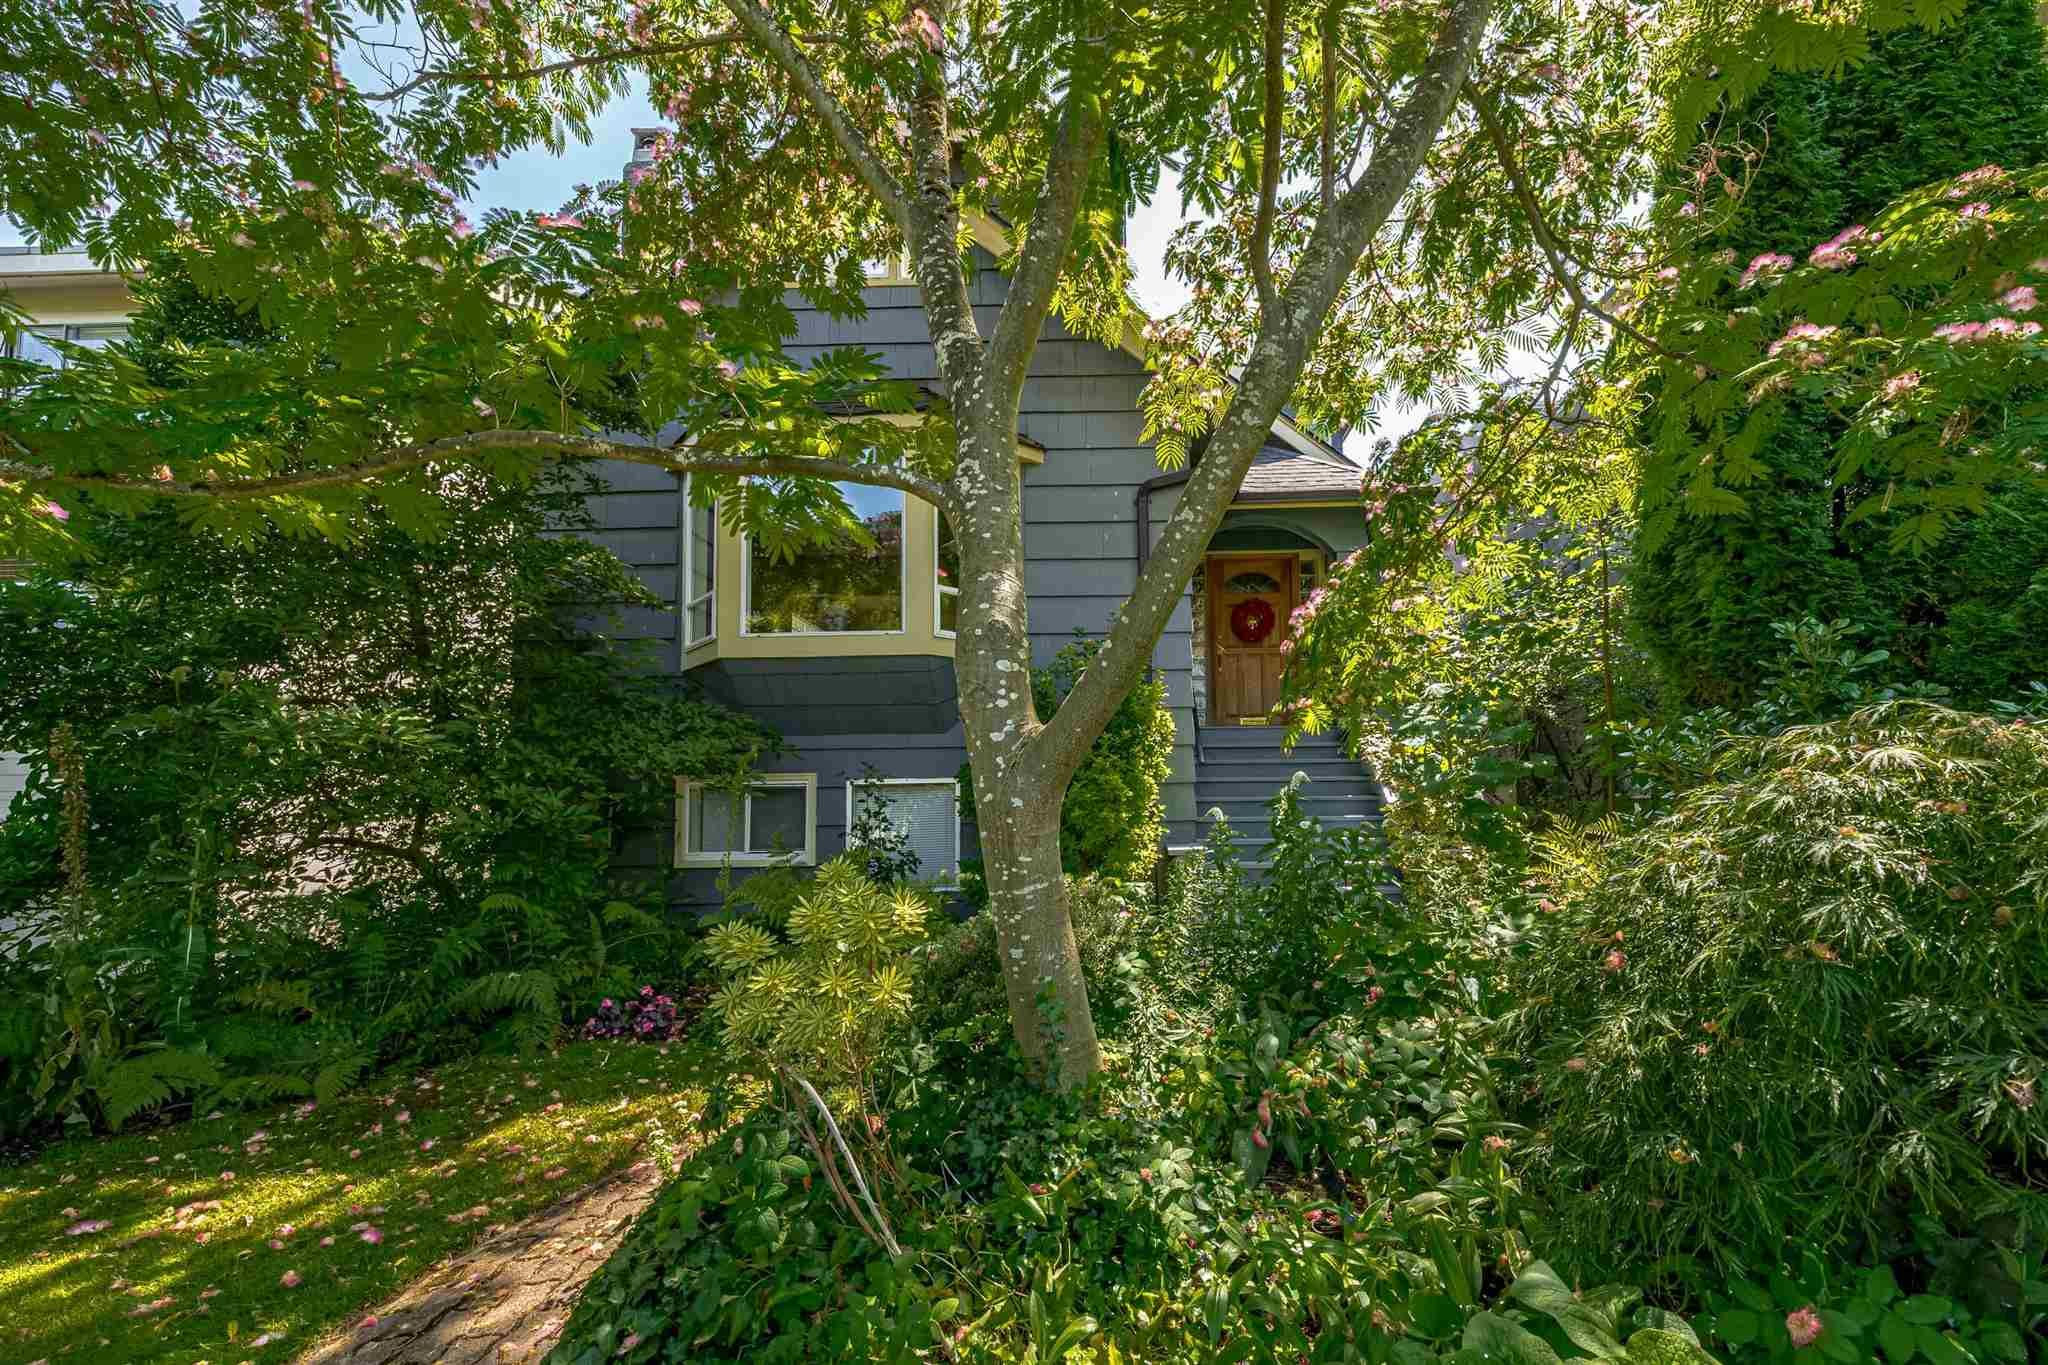 Main Photo: 3172 W 24TH Avenue in Vancouver: Dunbar House for sale (Vancouver West)  : MLS®# R2603321